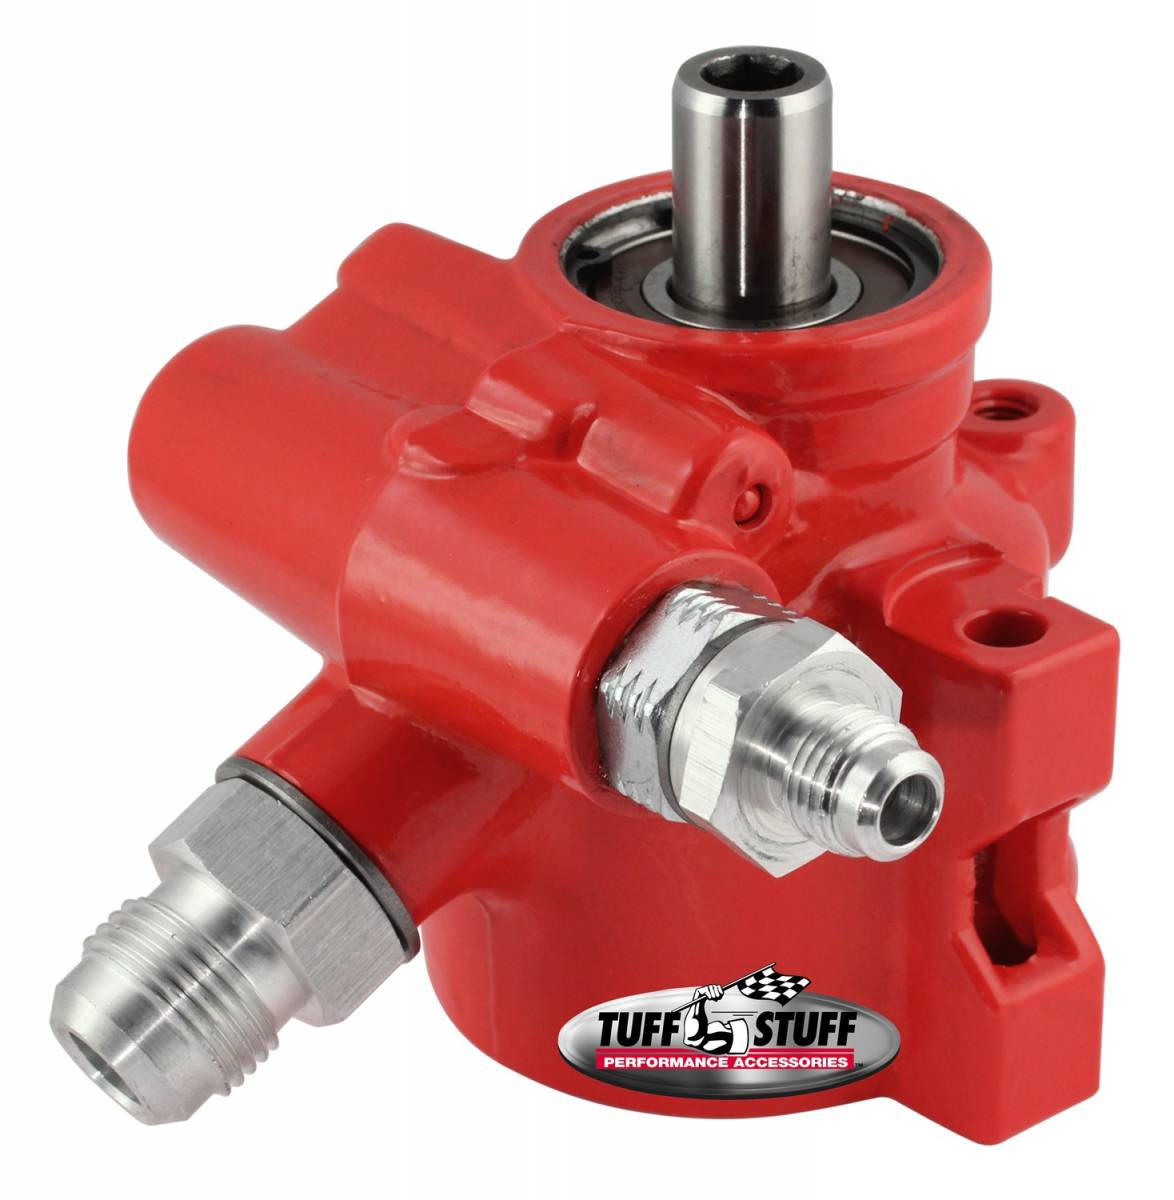 Tuff Stuff Performance - Type II Alum. Power Steering Pump AN-6 And AN-10 Fittings 8mm Through Hole Mounting Aluminum For Street Rods And Custom Vehicles w/Limited Engine Space Red 6175ALRED